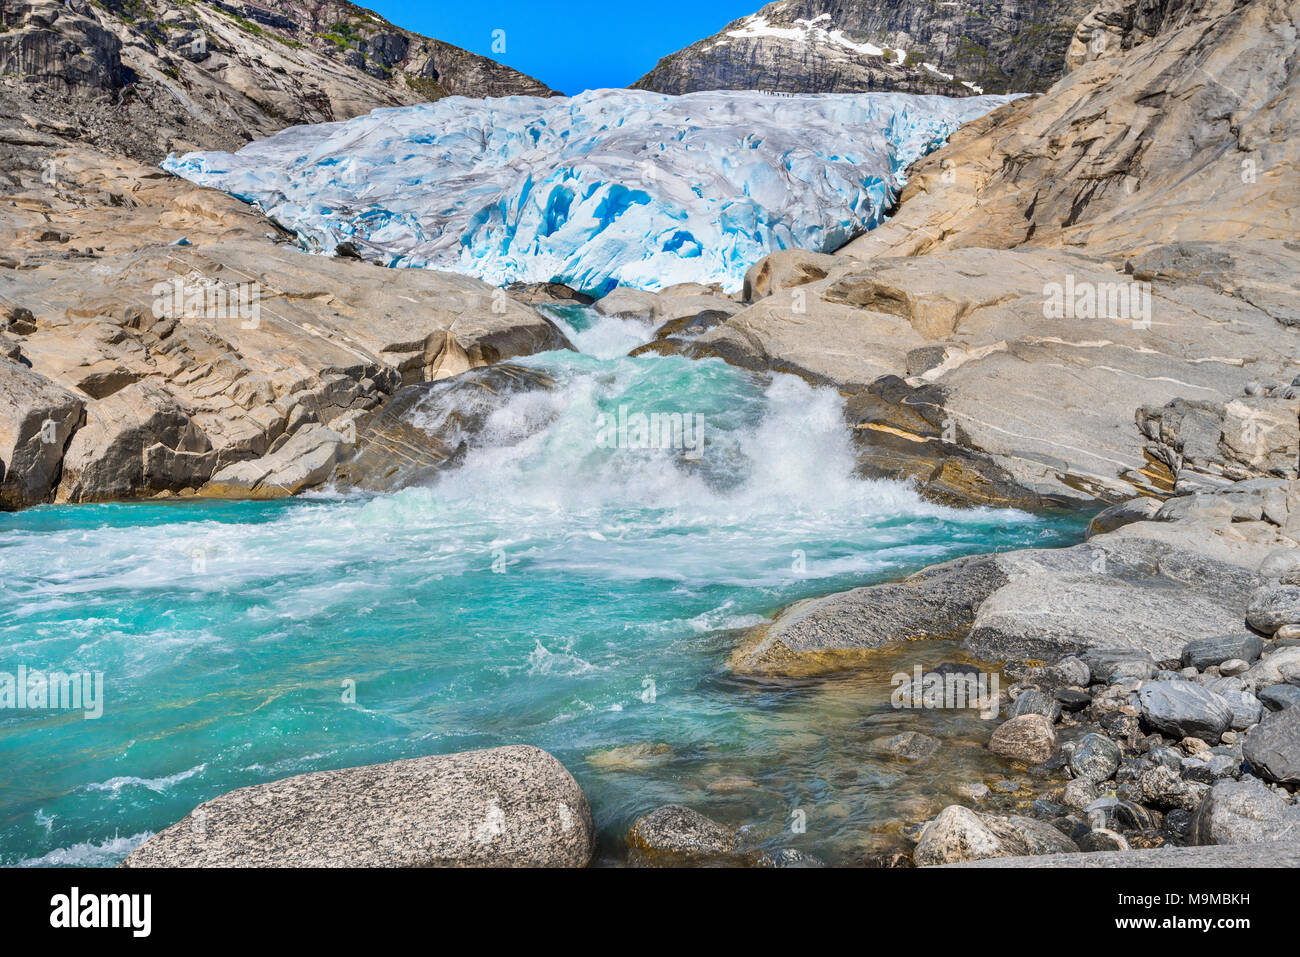 the Nigardsbreen glacier and its bassin, Norway, Jostedalen, Jostedalsbreen National Park near Gaupne - Stock Image